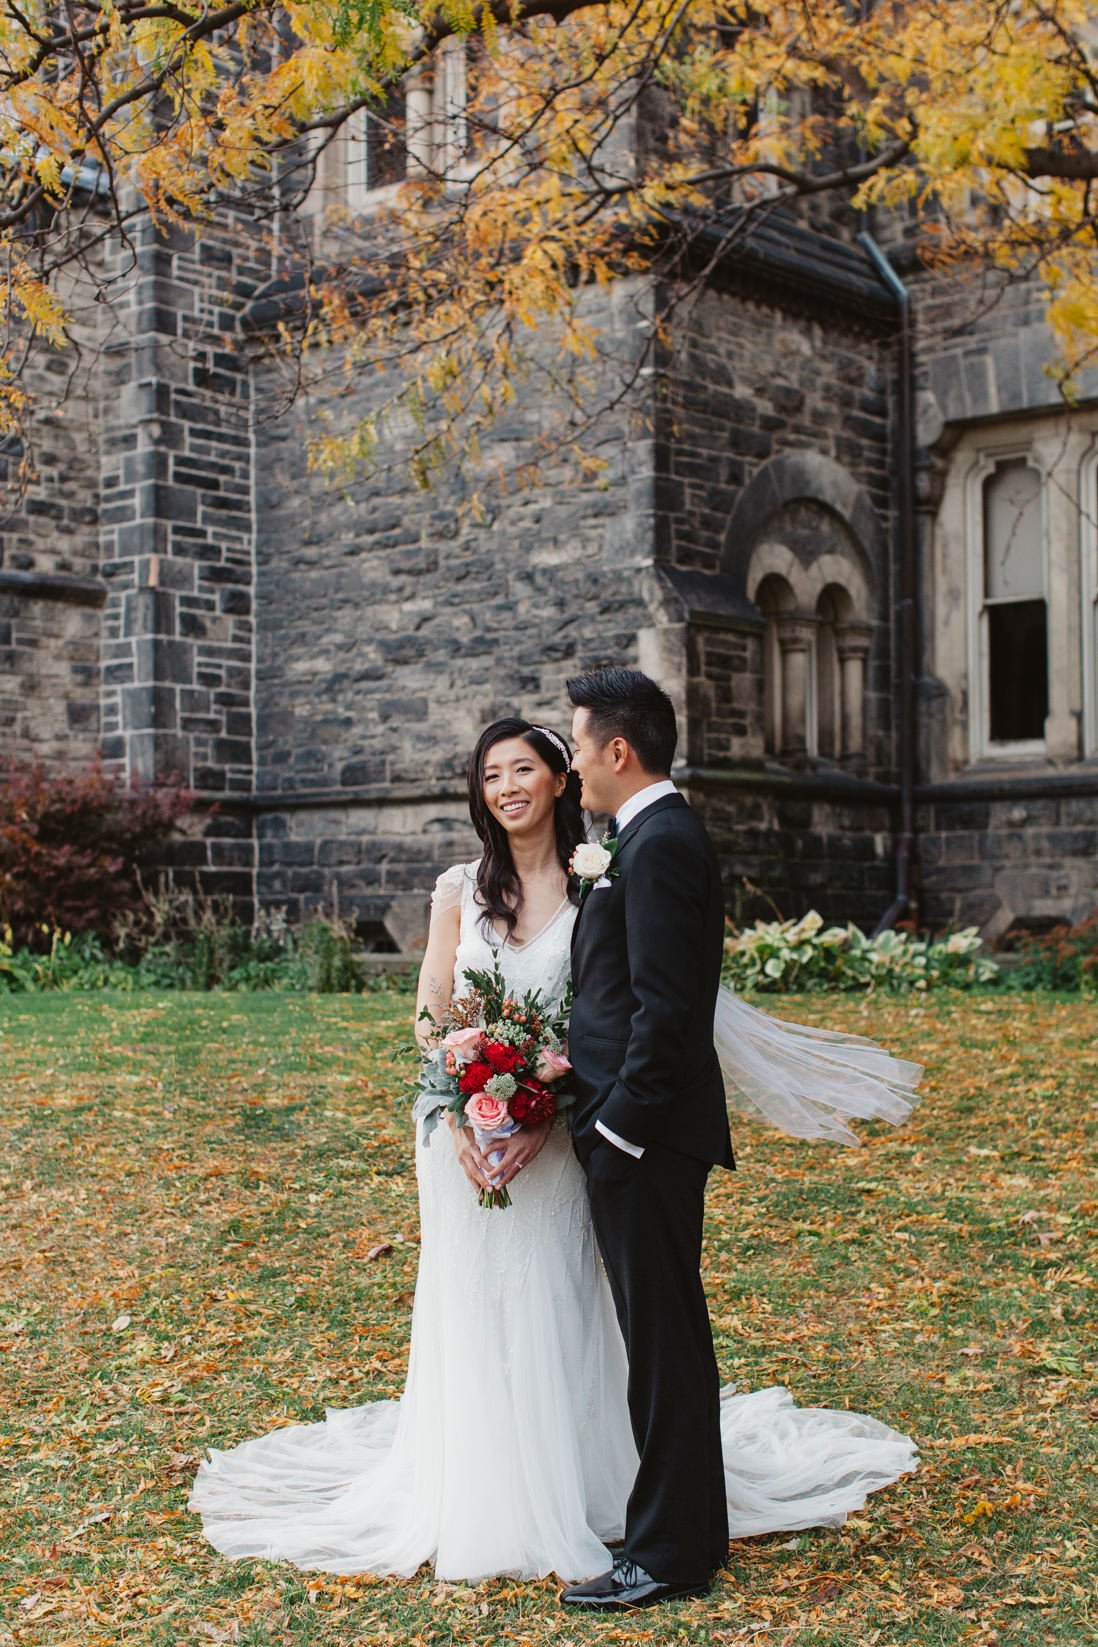 Autumn Bride & Groom Portraits | University College wedding | University of Toronto | EIGHTYFIFTH STREET PHOTOGRAPHY